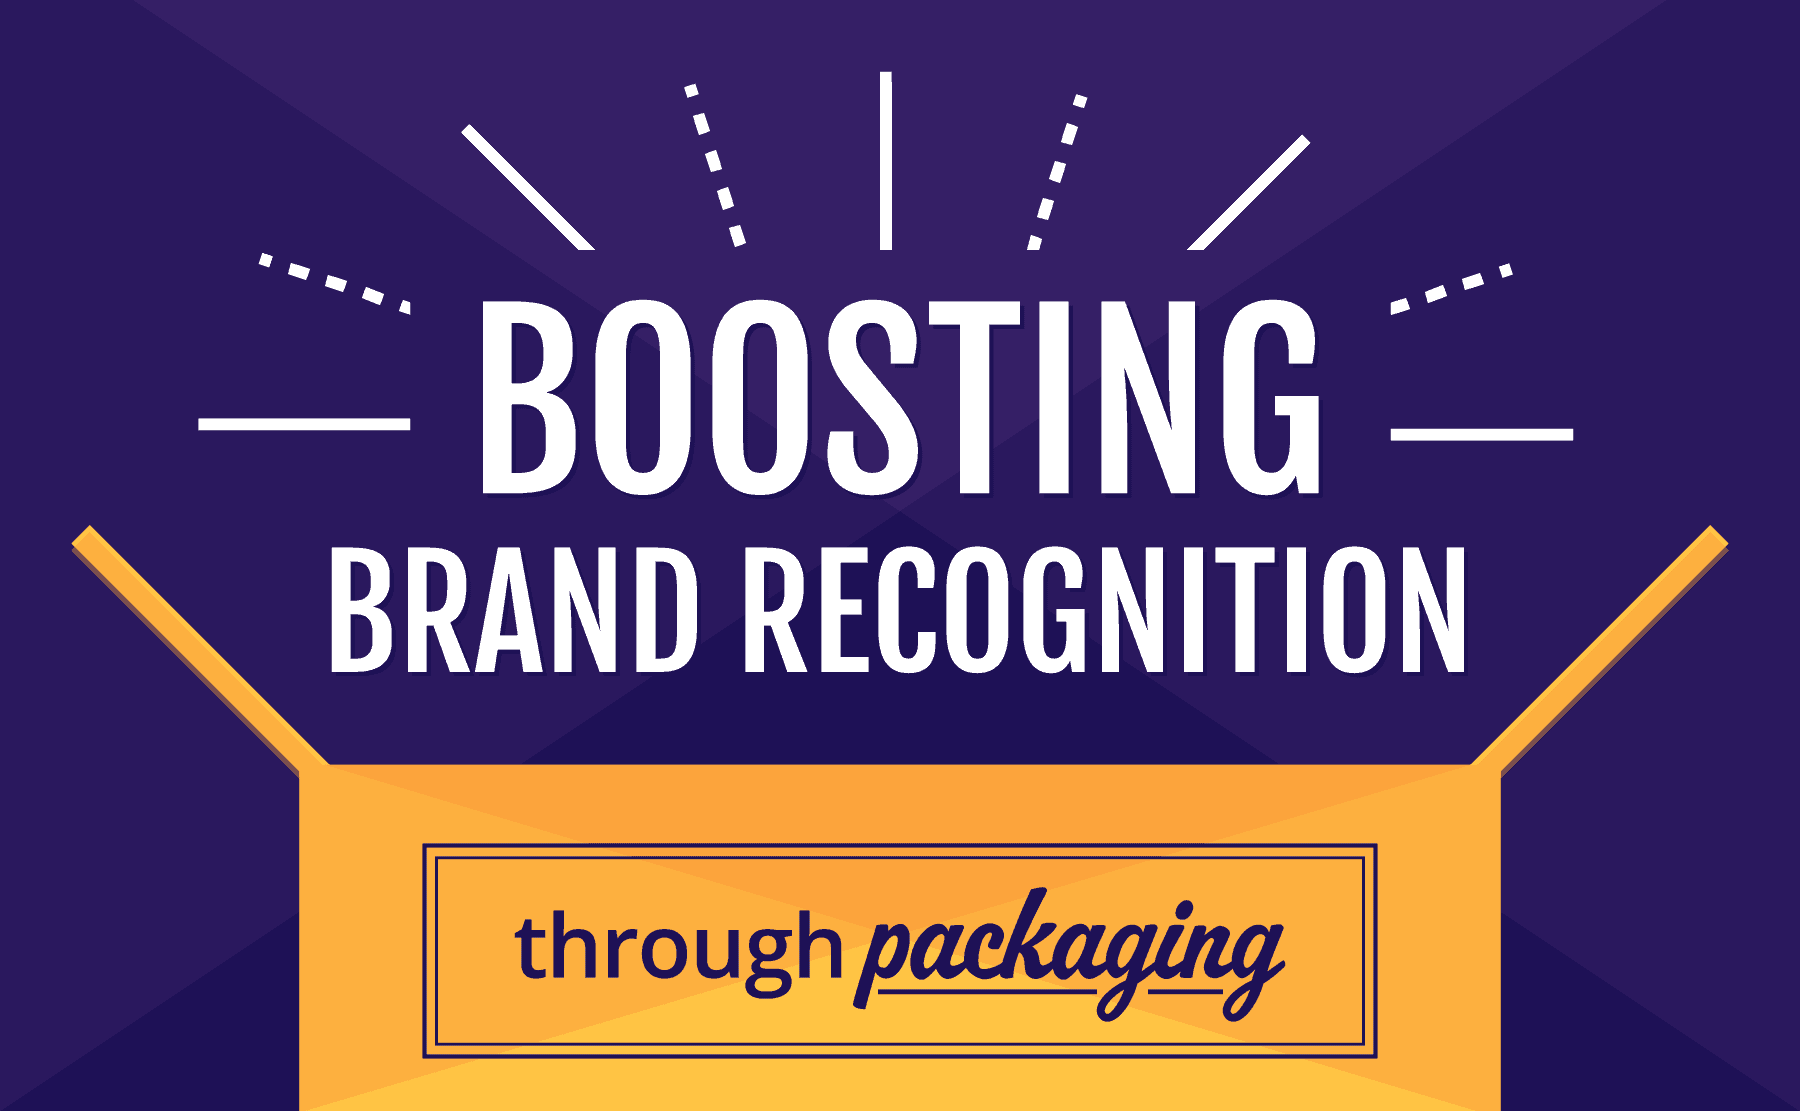 Boosting Brand Recognition Through Packaging